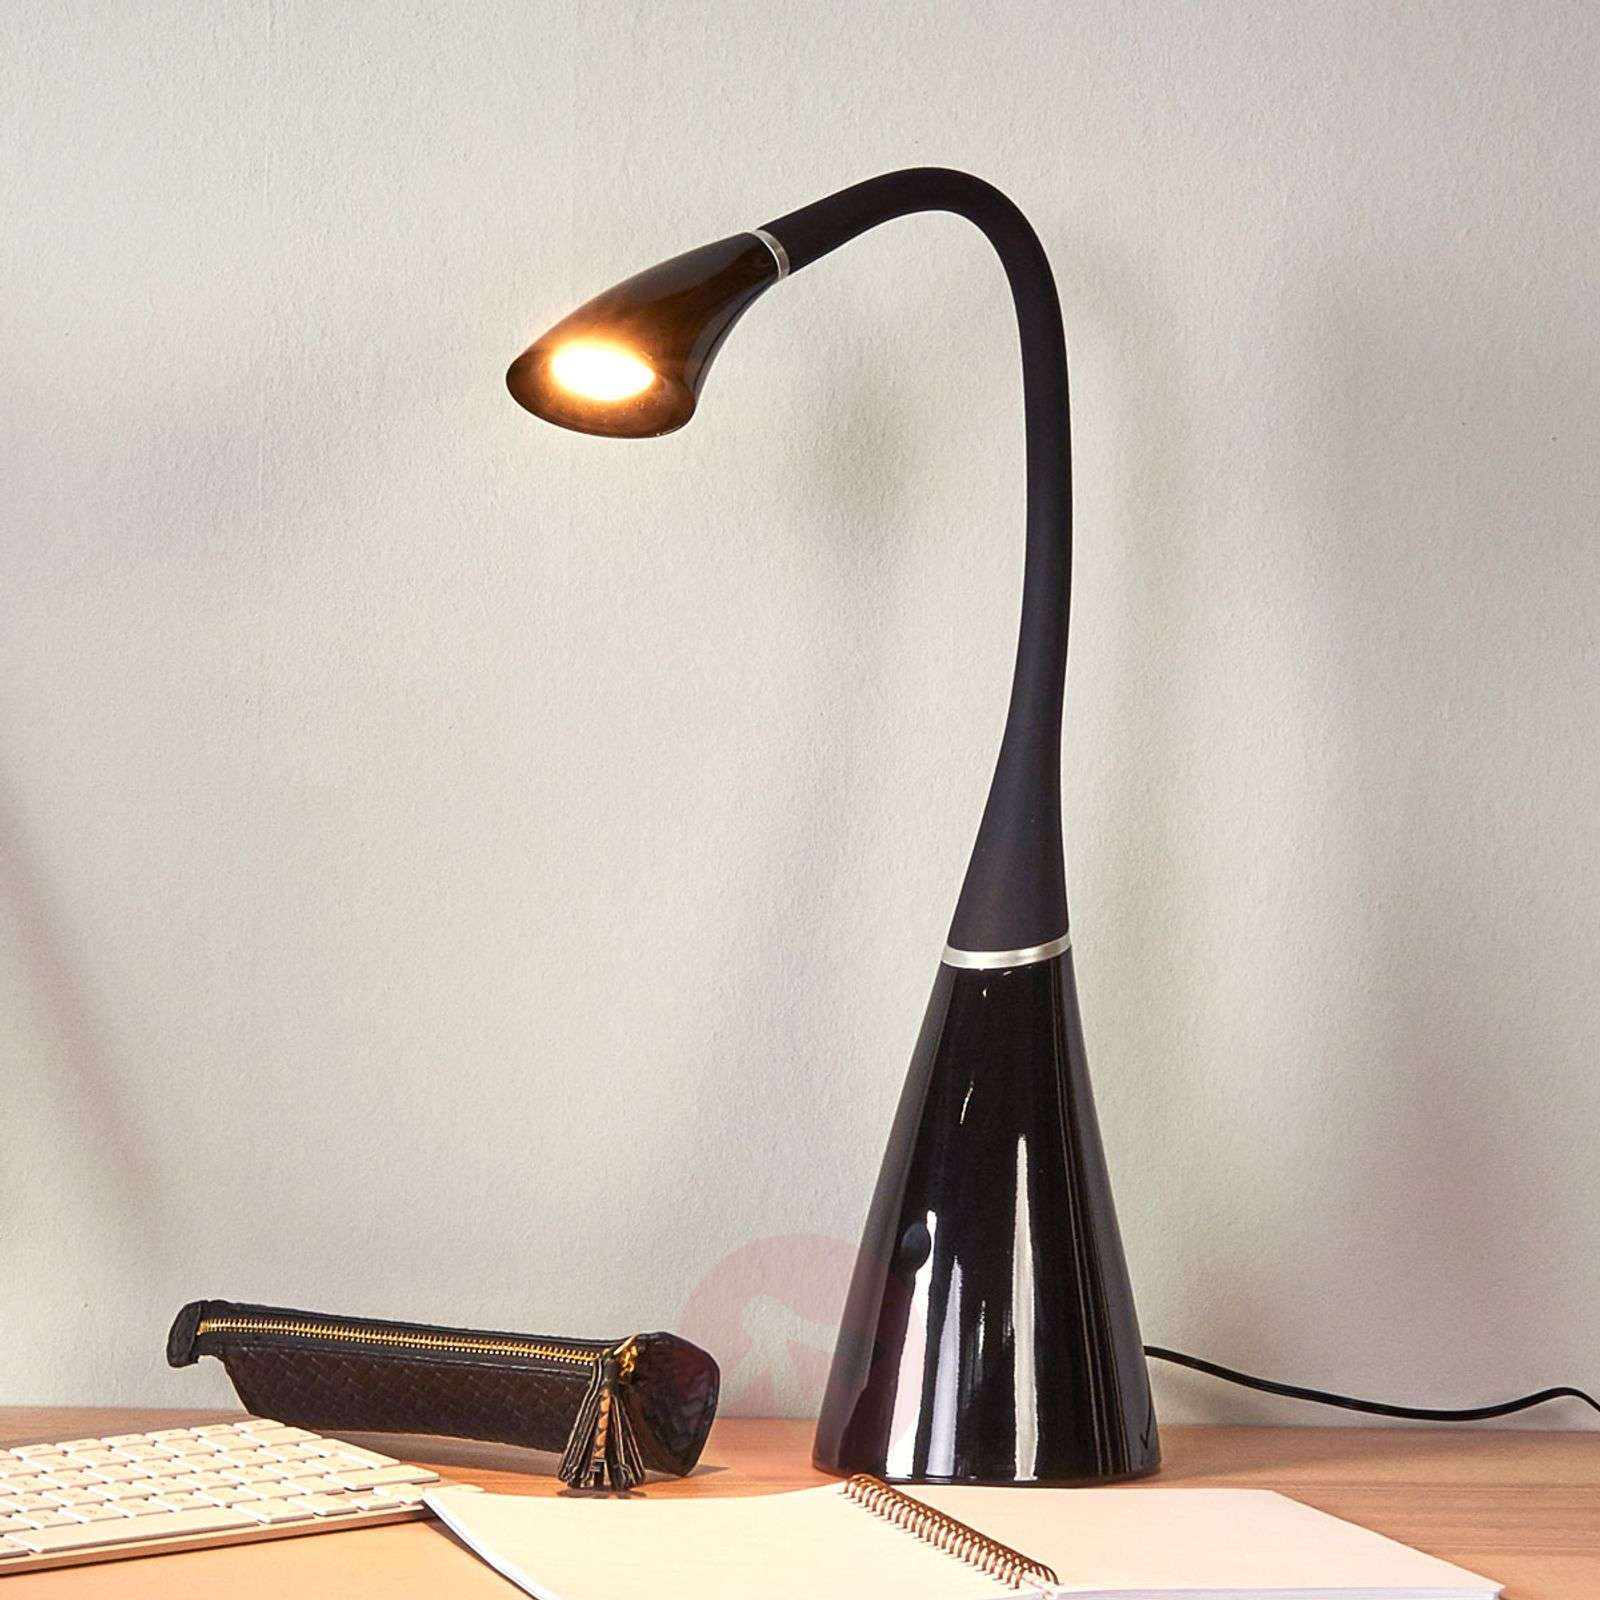 Noelia dimmable LED table lamp for the office-9643045-02